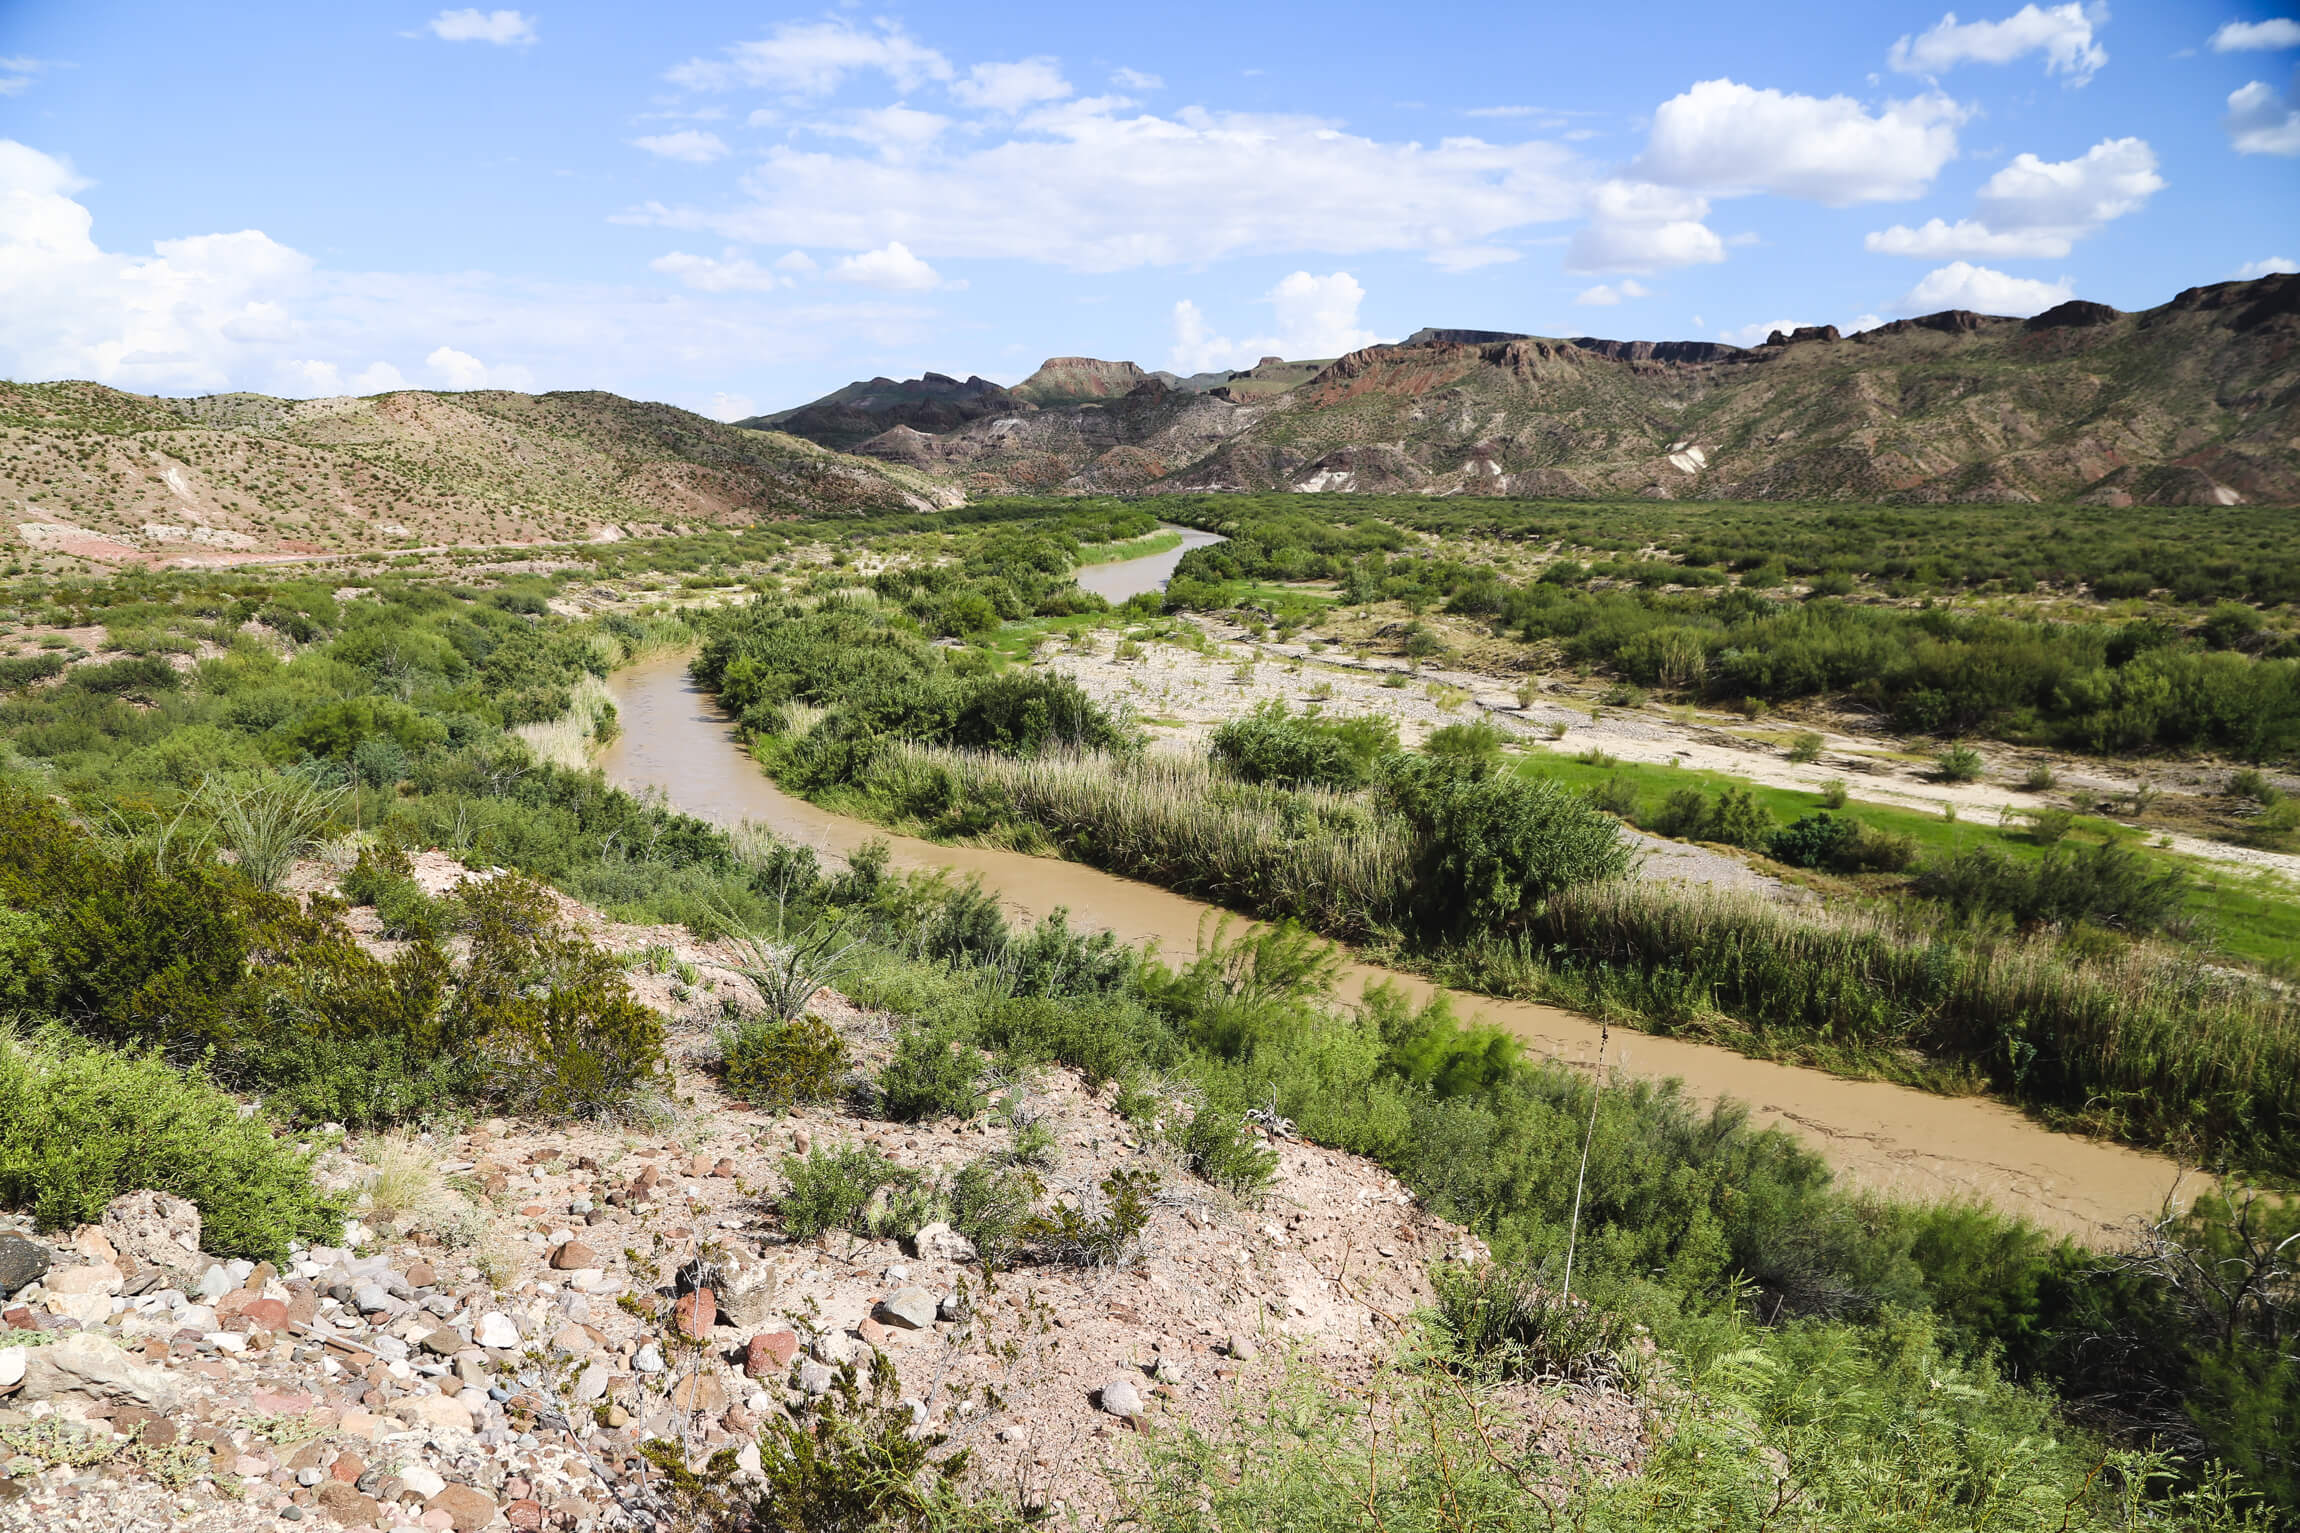 The Texas River Road